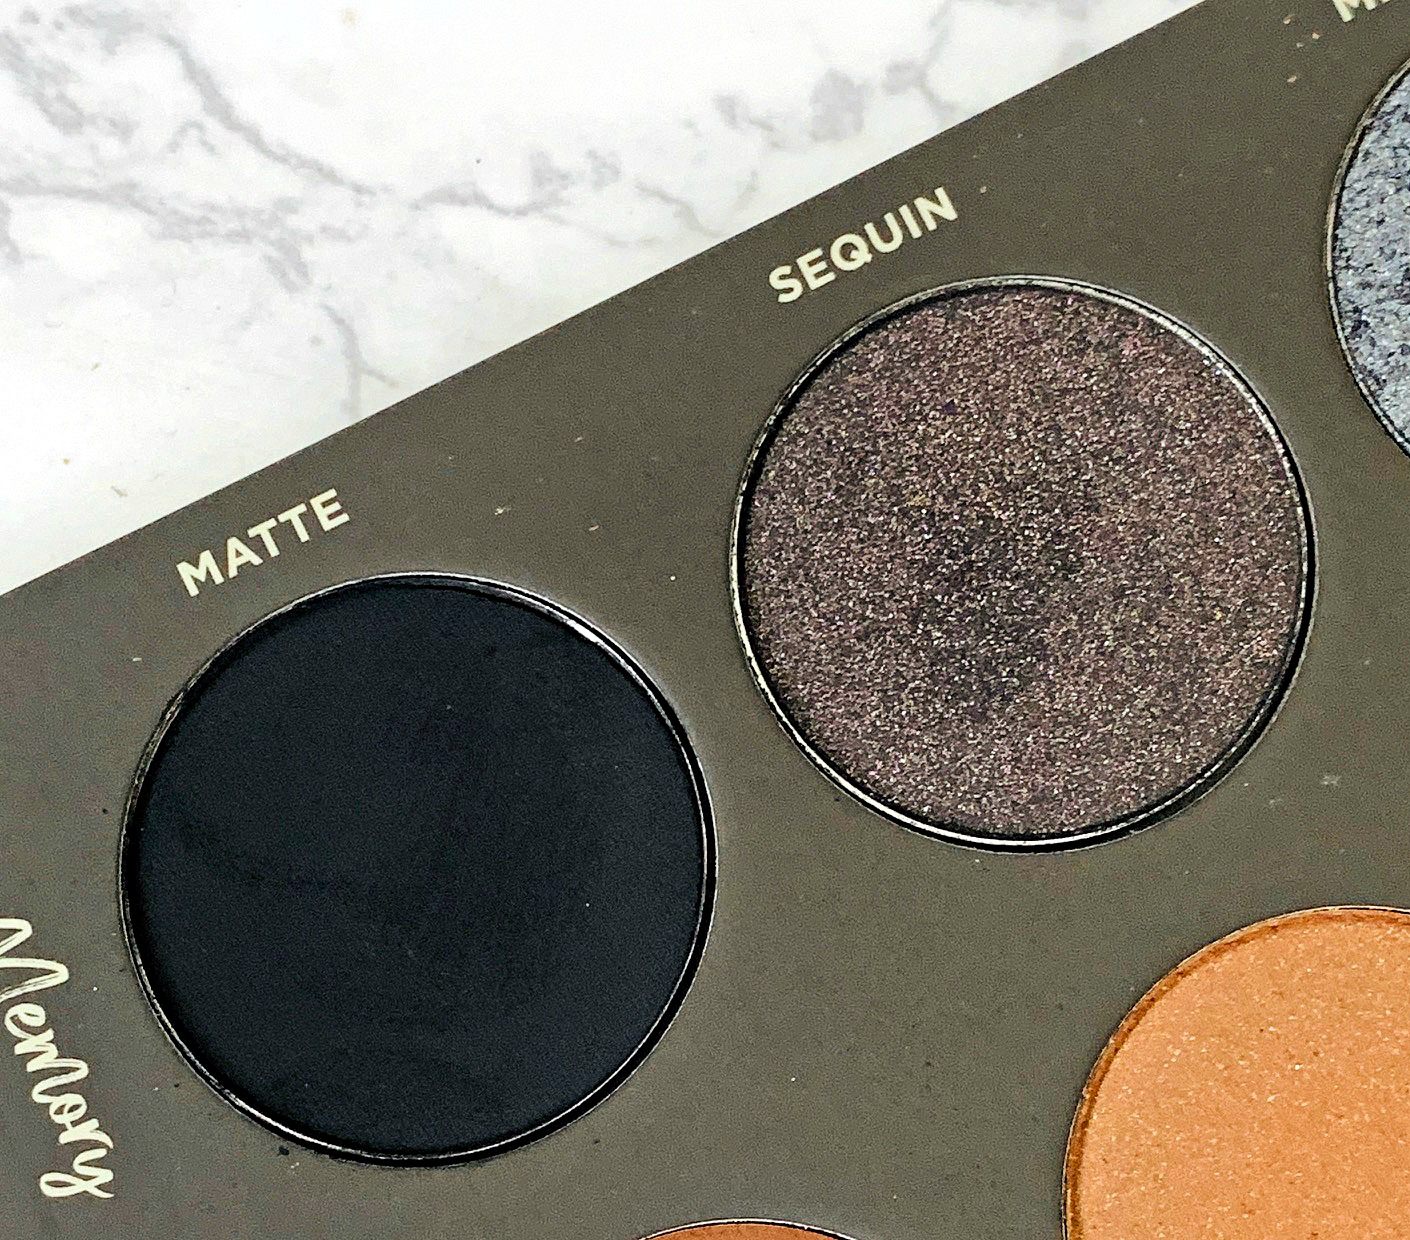 Tati Beauty Textured Neutrals Volume 1 Palette - worth the hype?, Tati Beauty Textured Neutrals Volume 1 Palette Review & Swatches